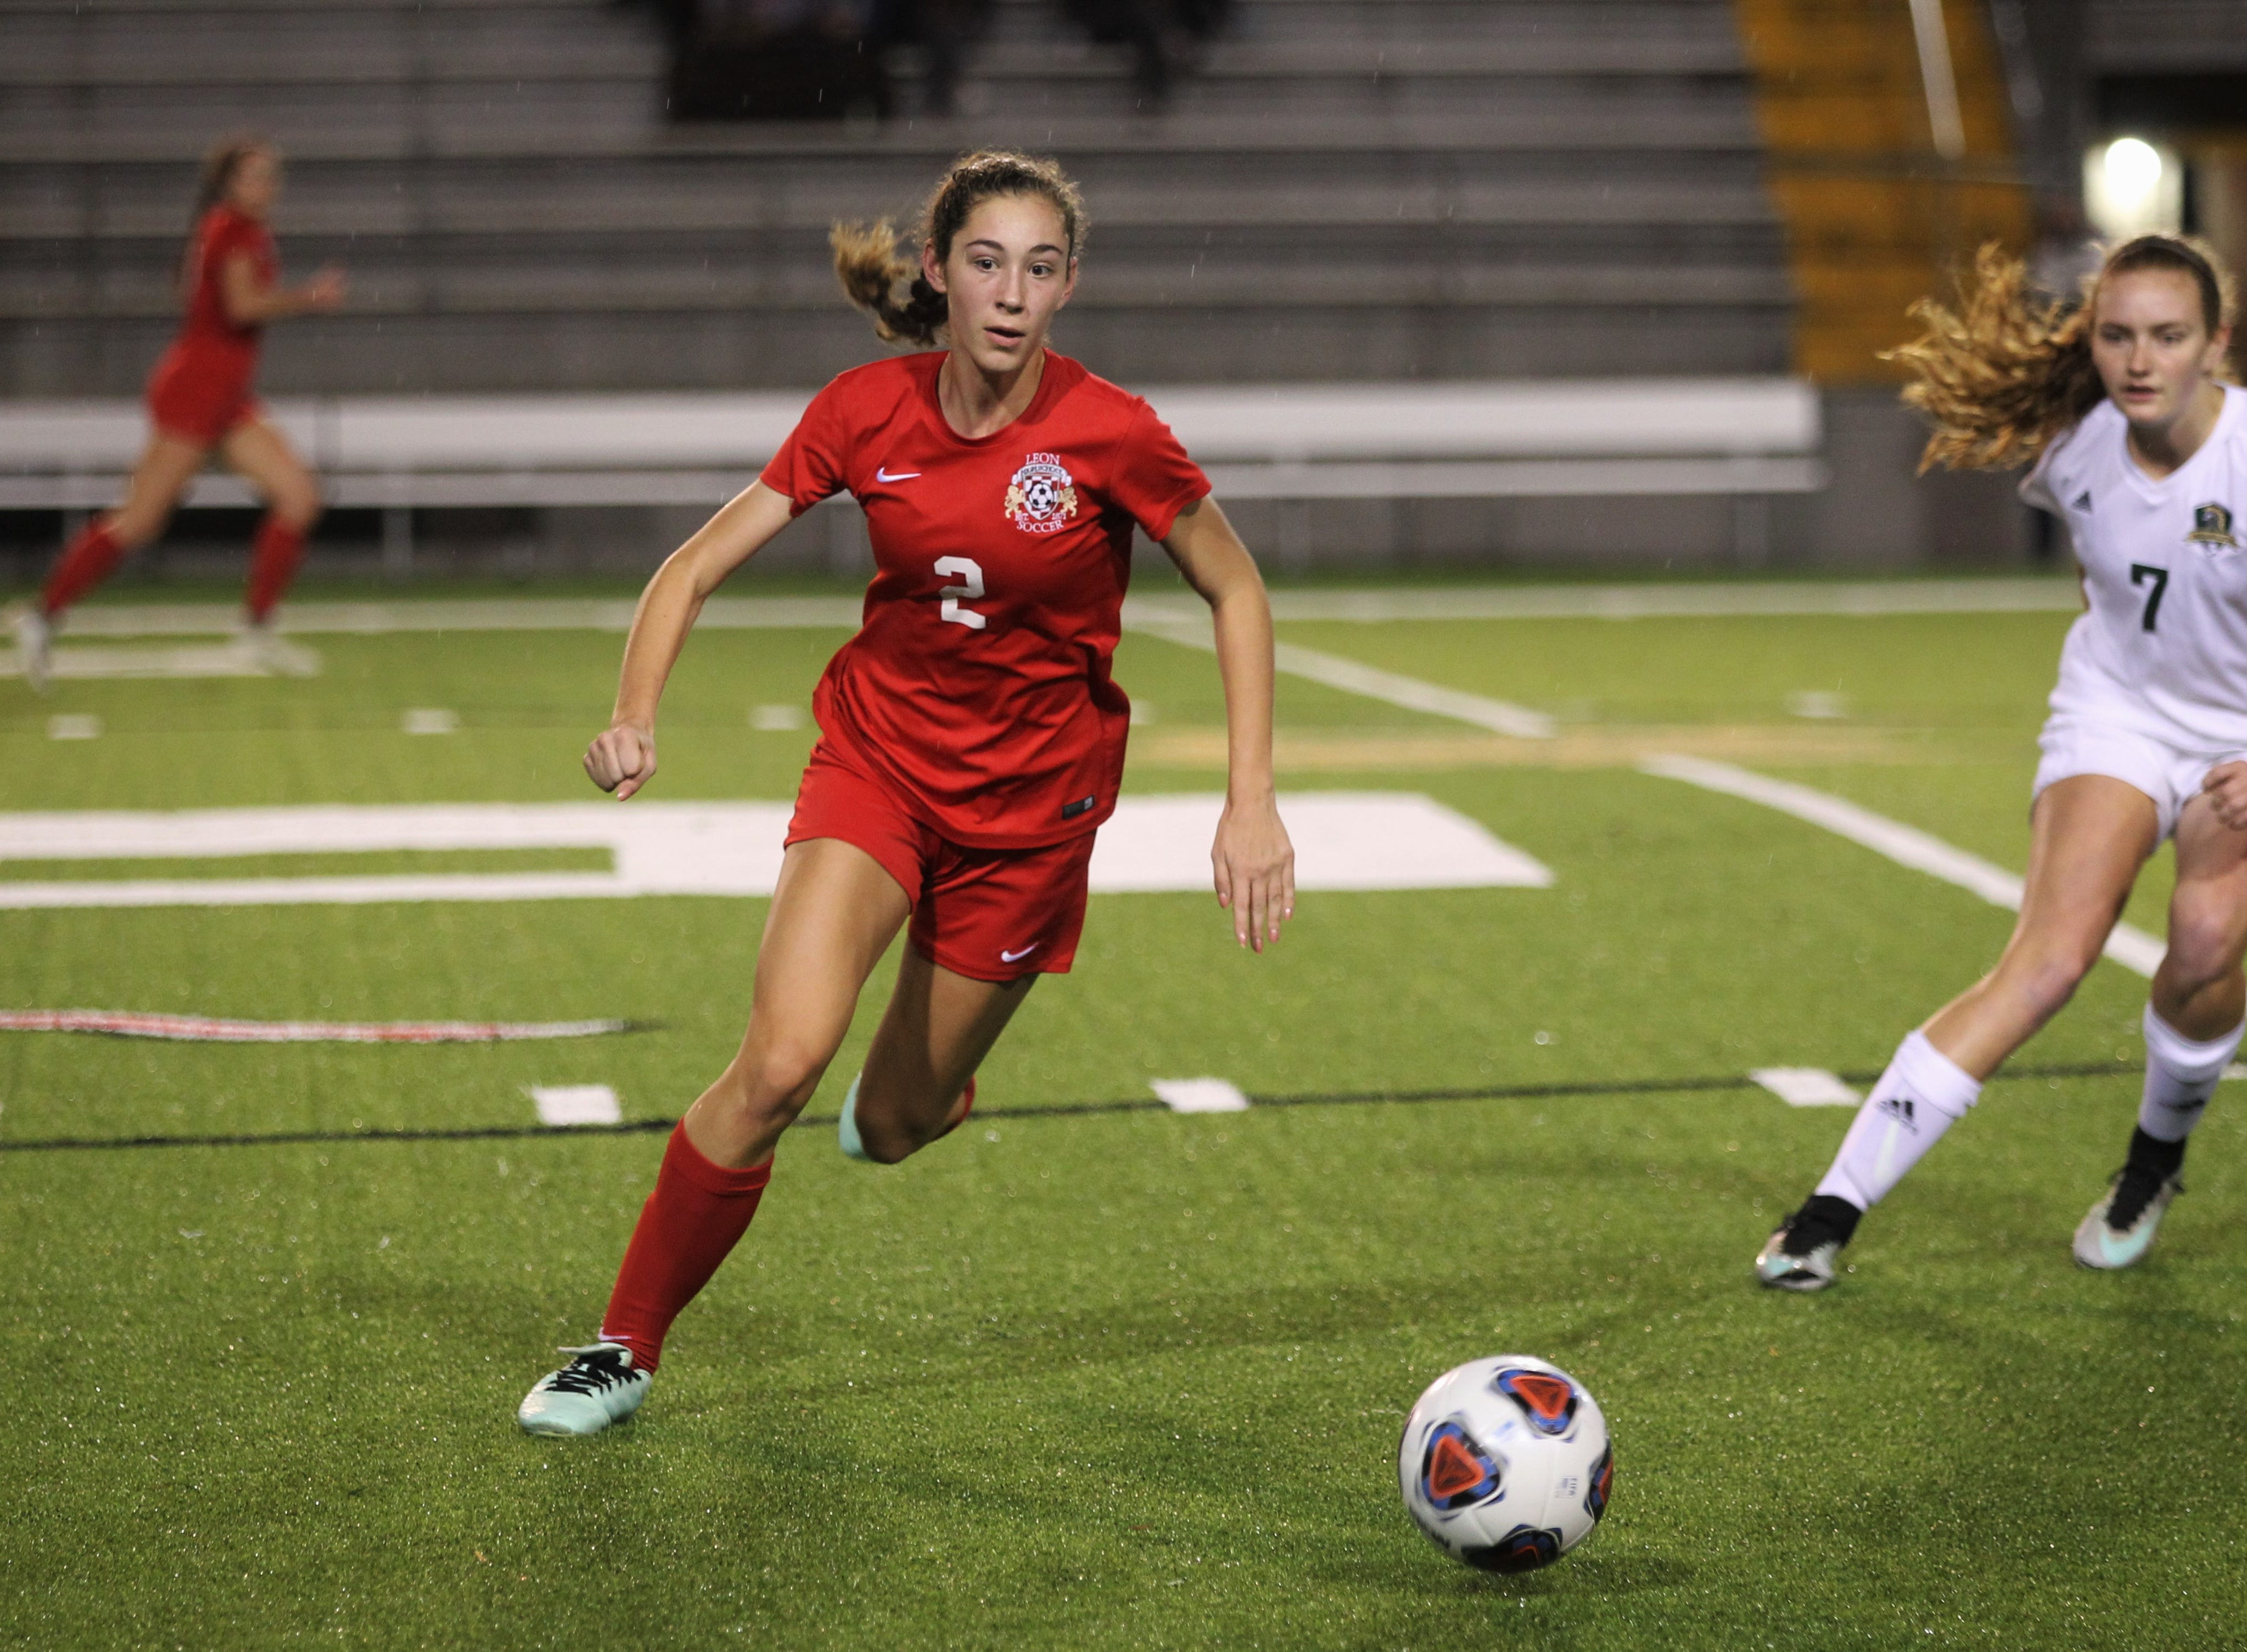 Leon's Melody Hughes races to get control of a free ball as Leon's girls soccer team beat Lincoln in the District 2-4A championship on Feb. 1, 2019.